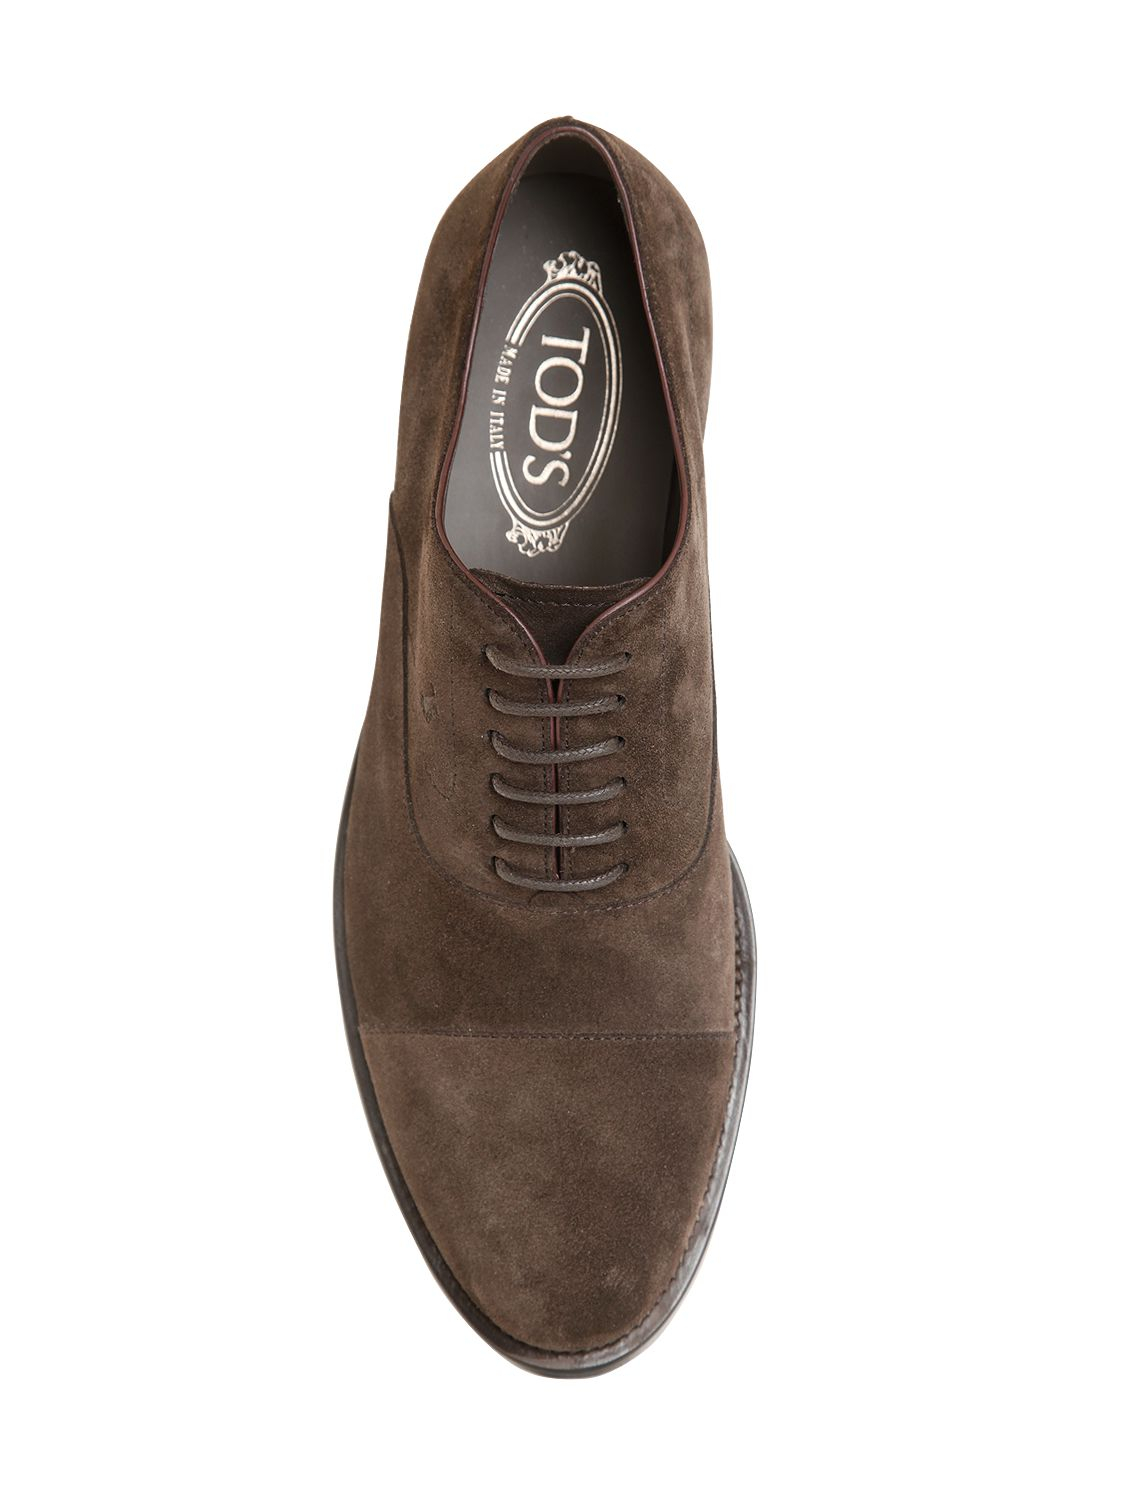 sale shop offer Tod's lace up oxford shoes perfect online g64Rl39TlU